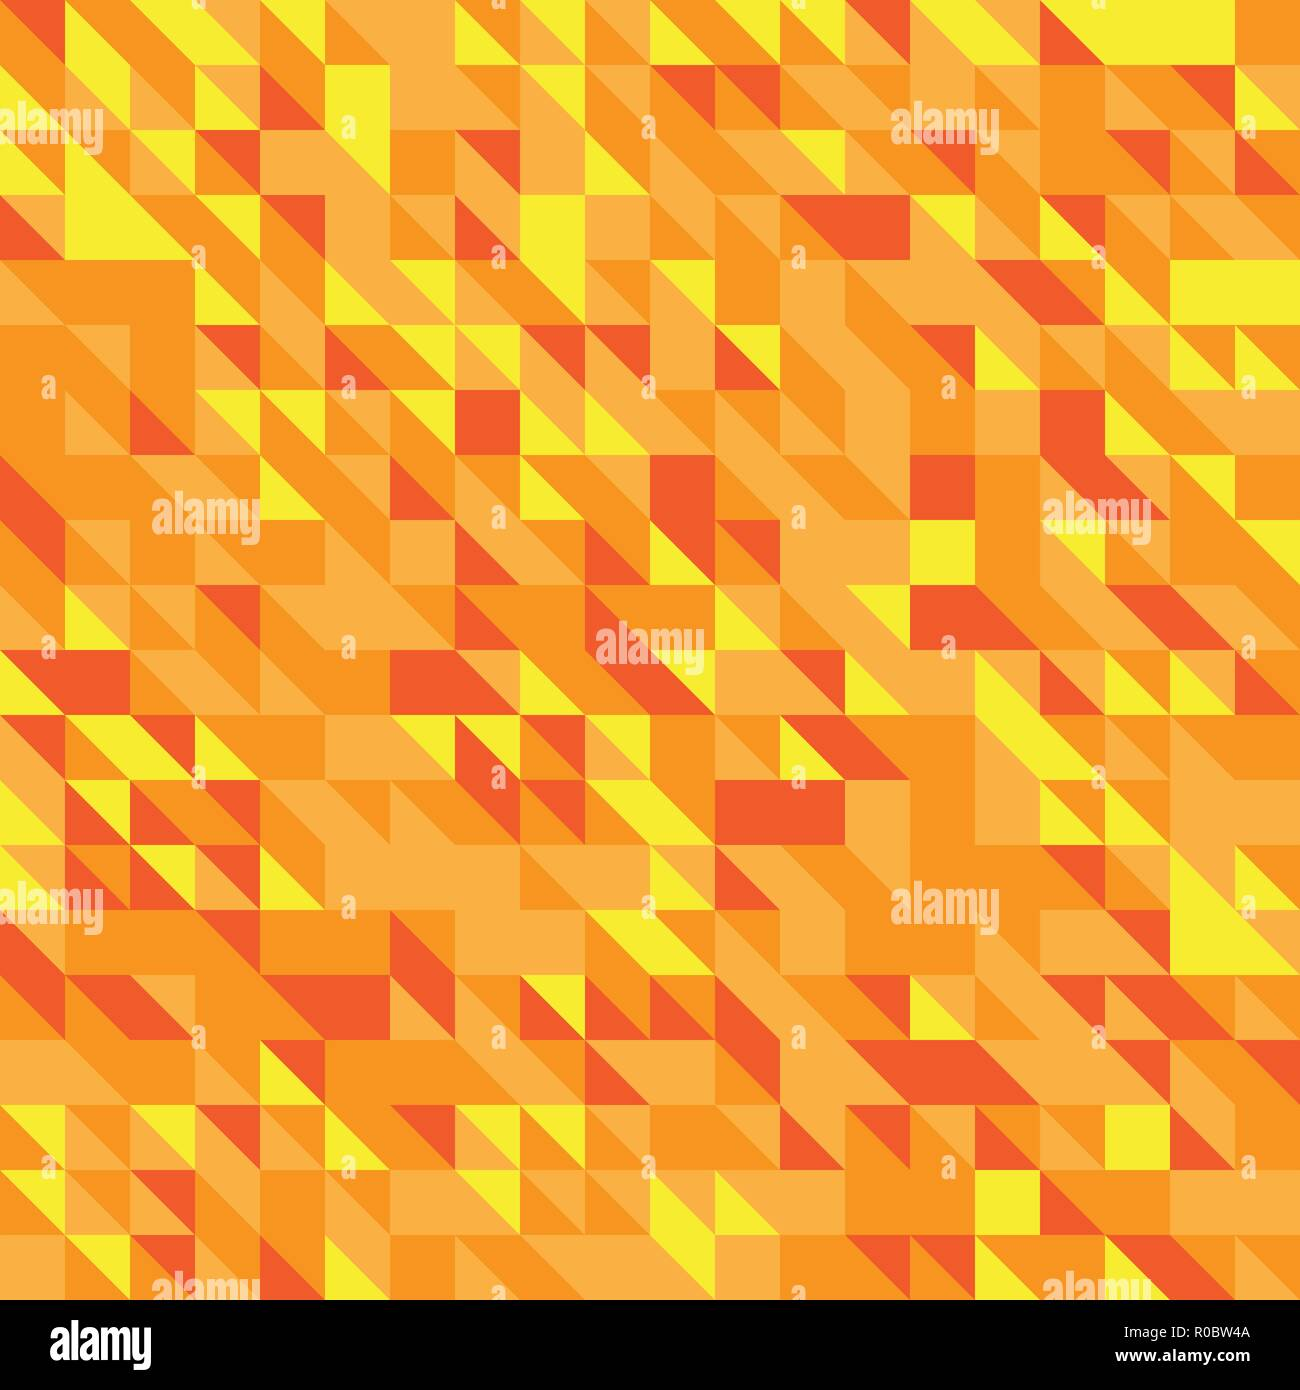 Vector Illustration Of A Seamless Pattern Of Simple Triangles In Different Shades Of Yellow Orange Red Colors Stock Vector Image Art Alamy